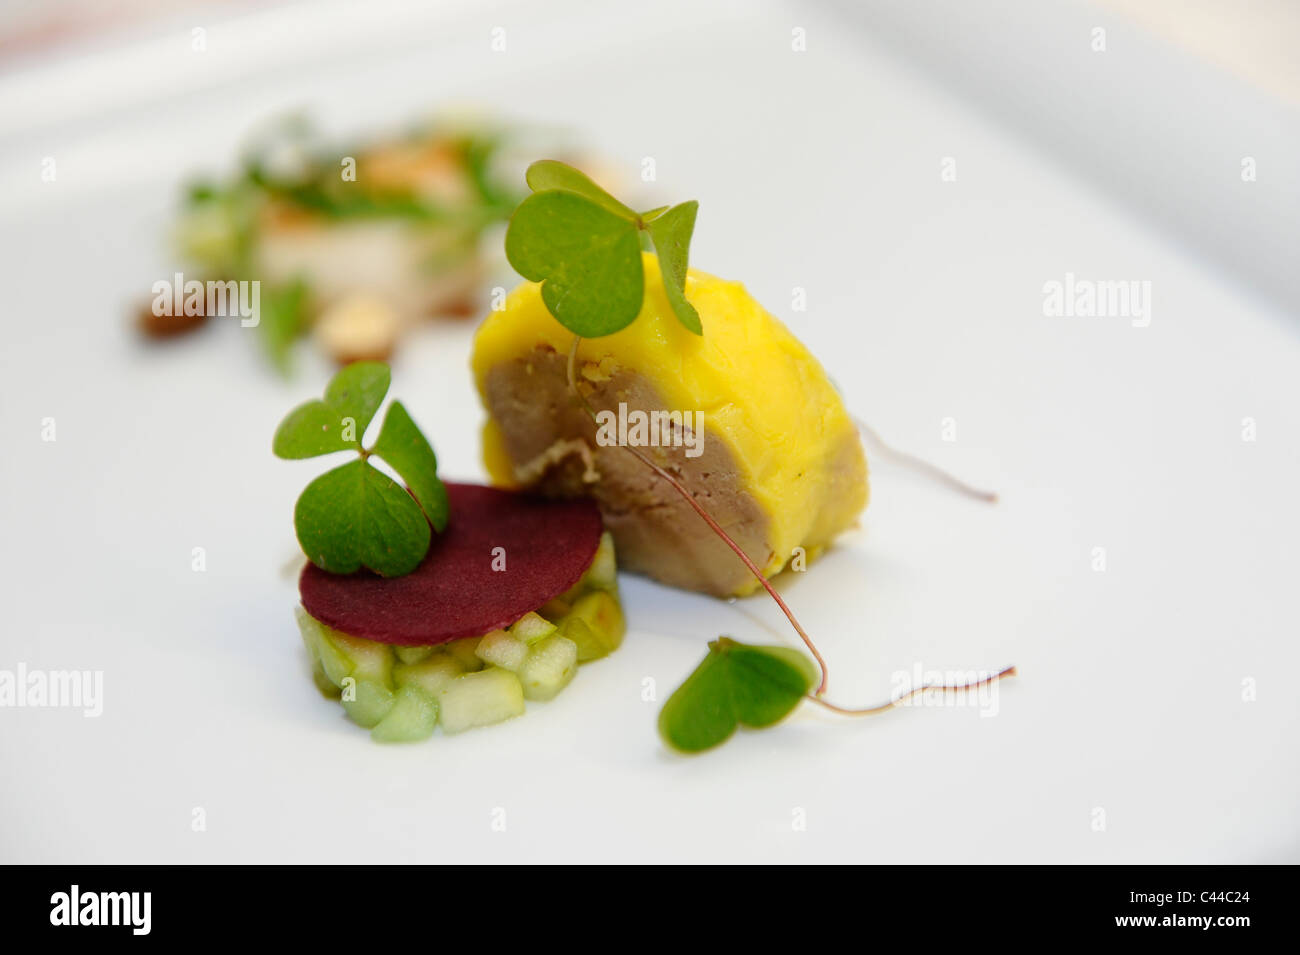 A gastronomic dishes of foie gras with apples - Stock Image